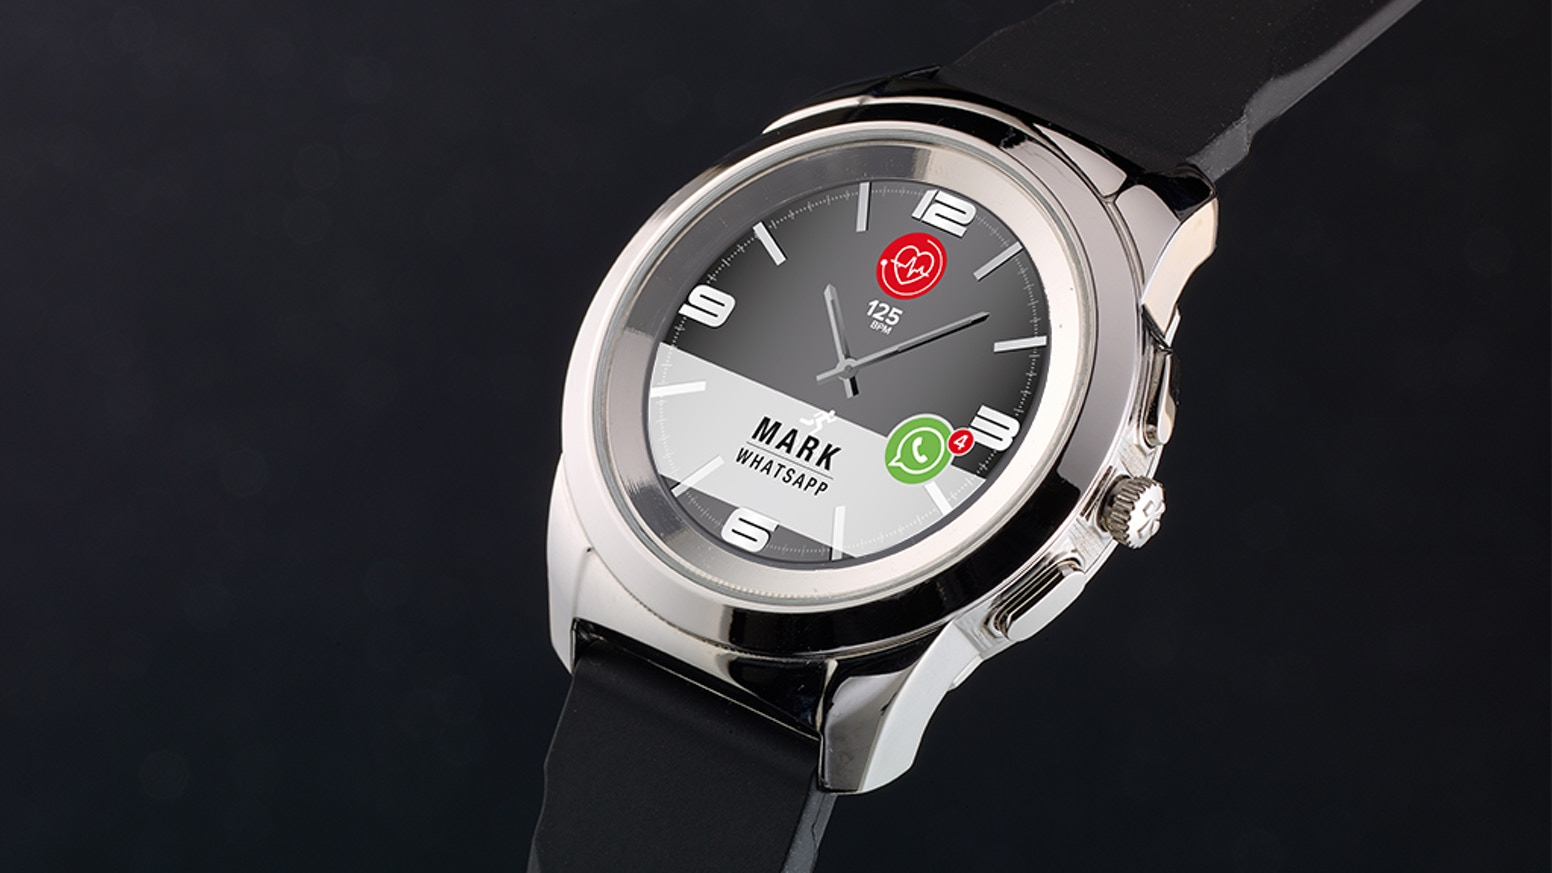 Proudly designed in Switzerland, the perfect always-on smartwatch blending classic design and smart features at an affordable price